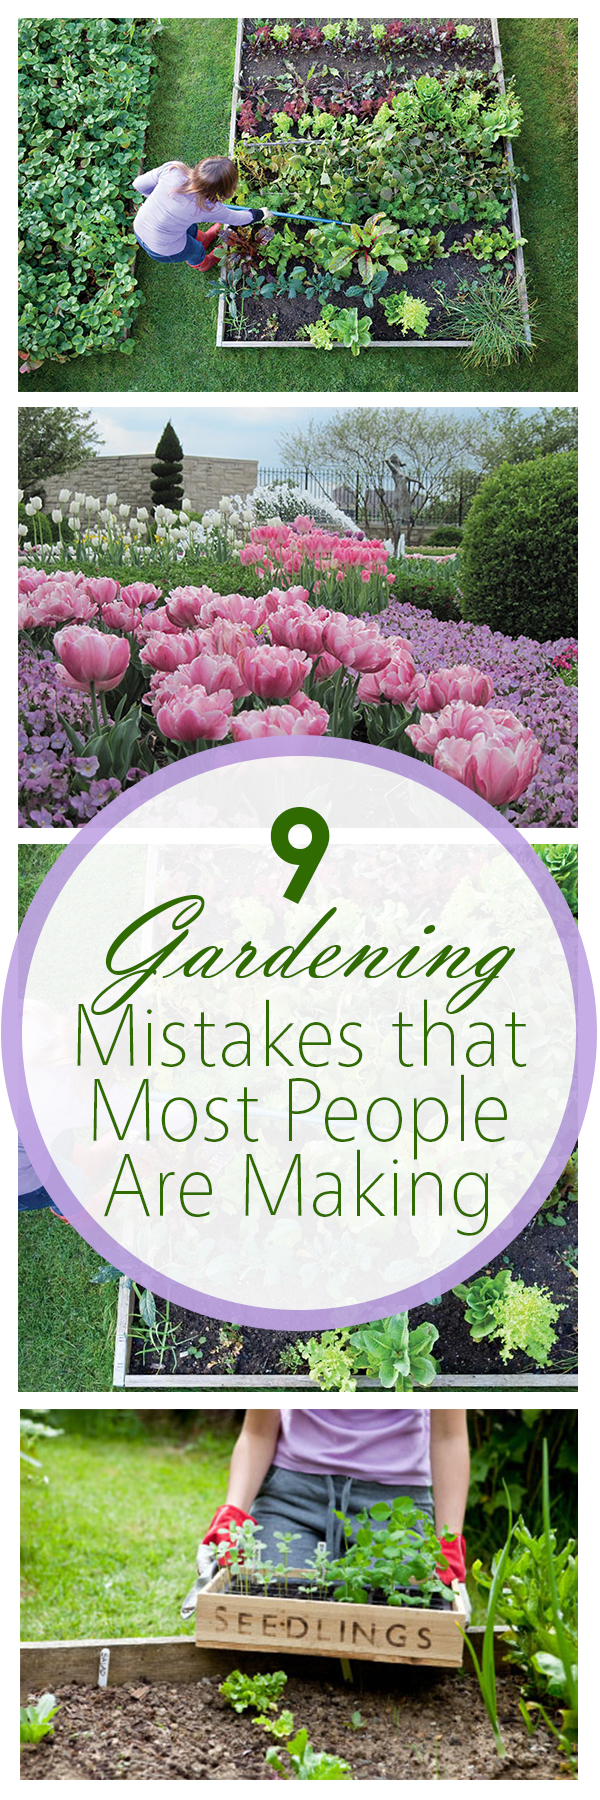 Gardening mistakes, gardening tips and tricks, gardening hacks, how to avoid gardening mistakes, popular pins, landscaping tips and tricks.